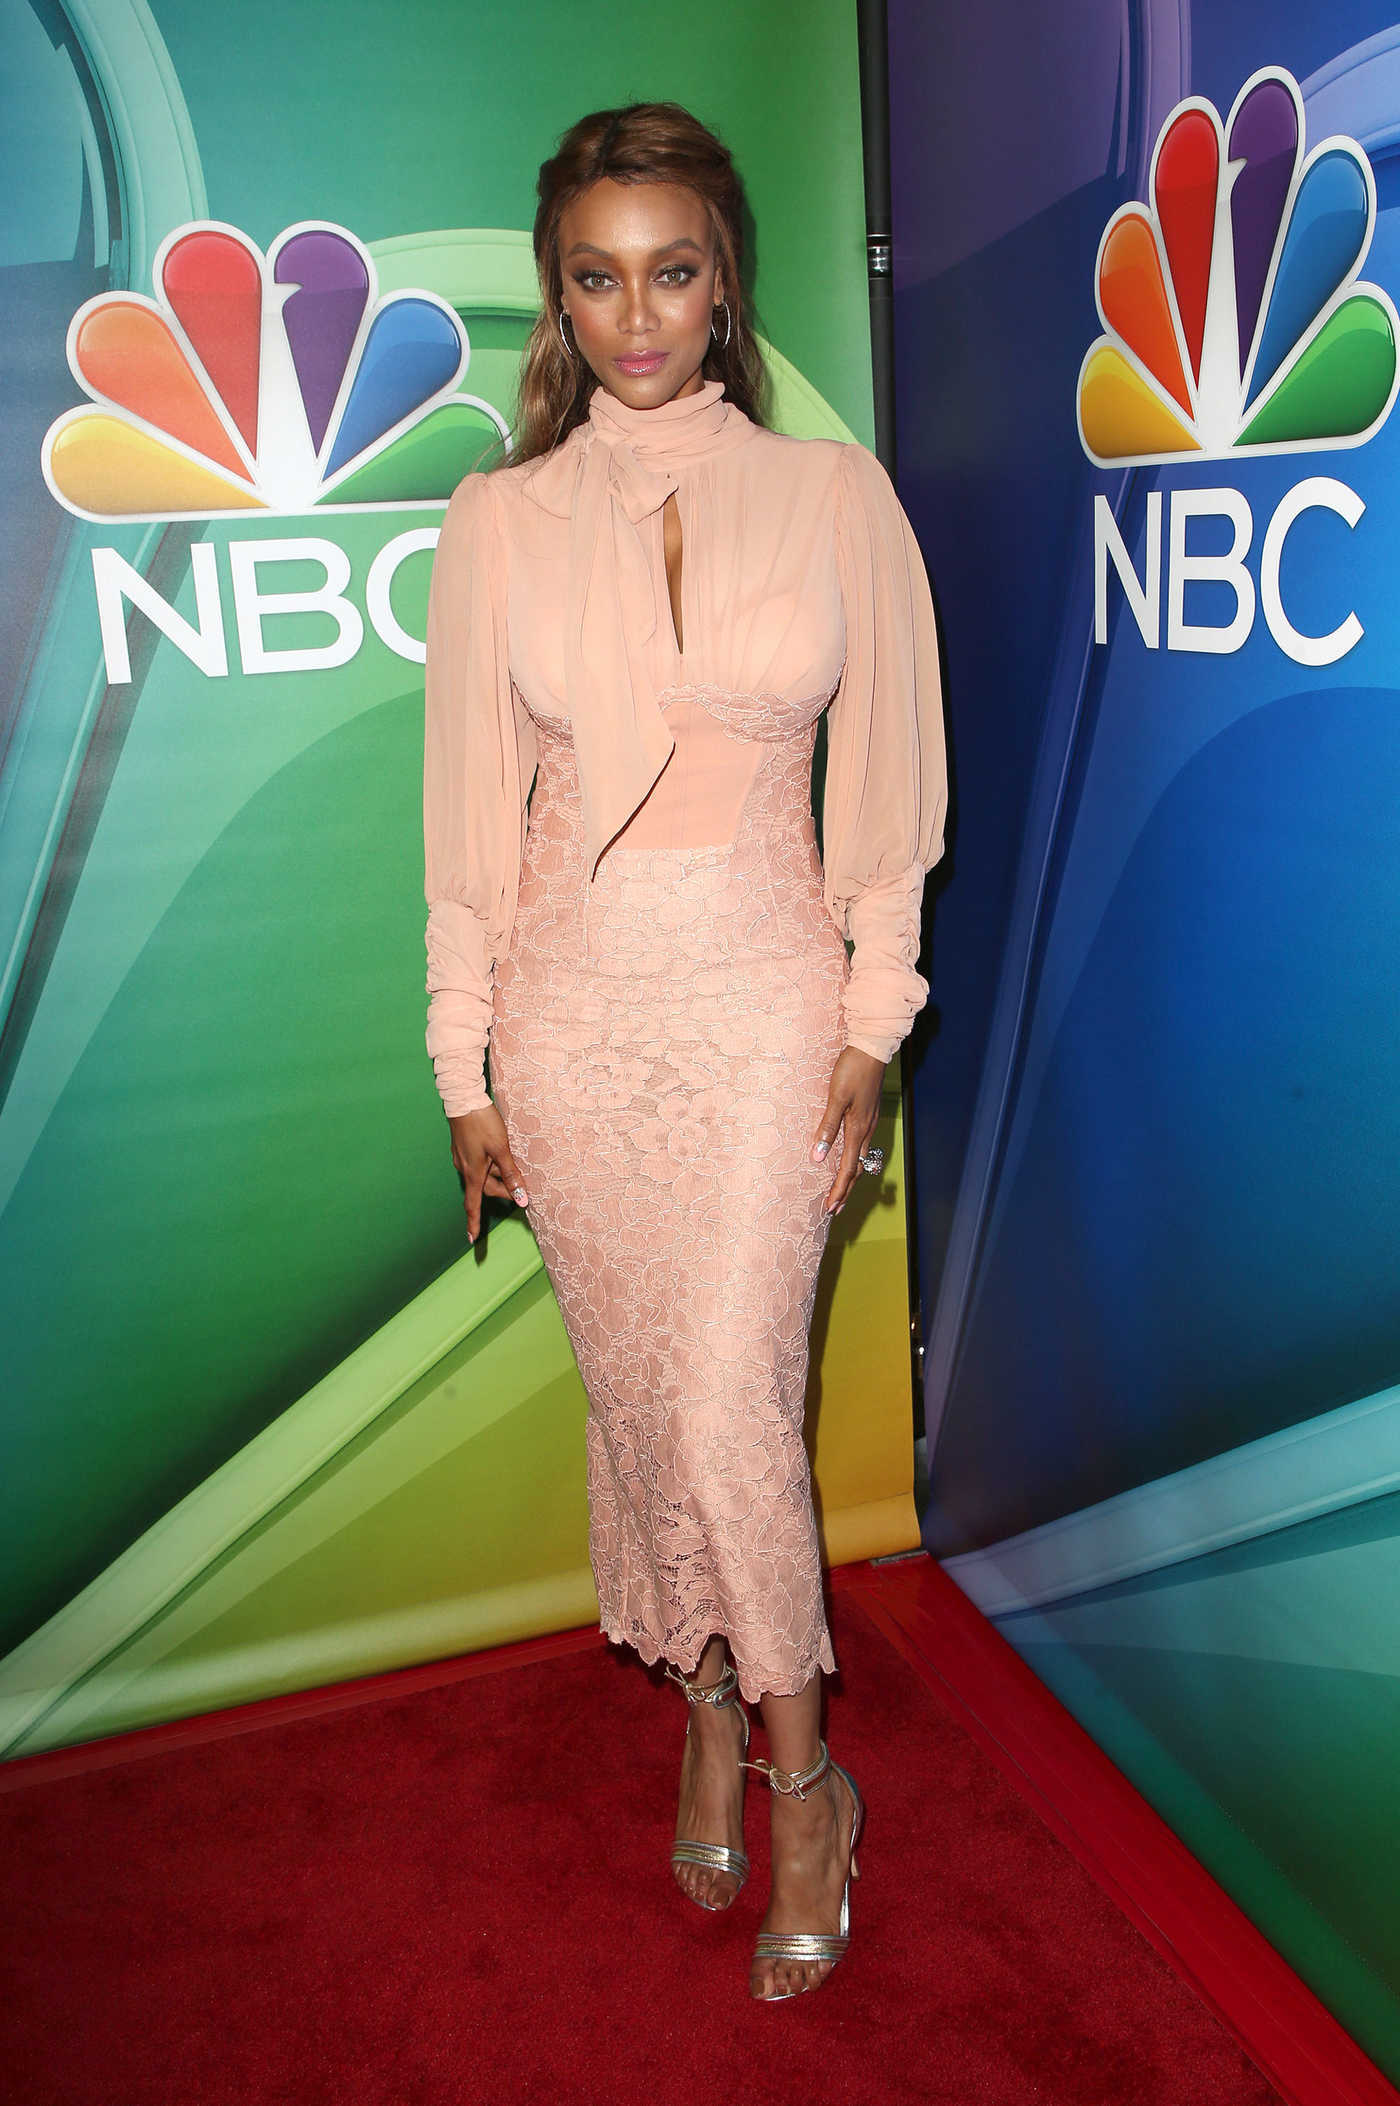 Tyra Banks at NBC Summer TCA Press Tour in Beverly Hills 08/03/2017